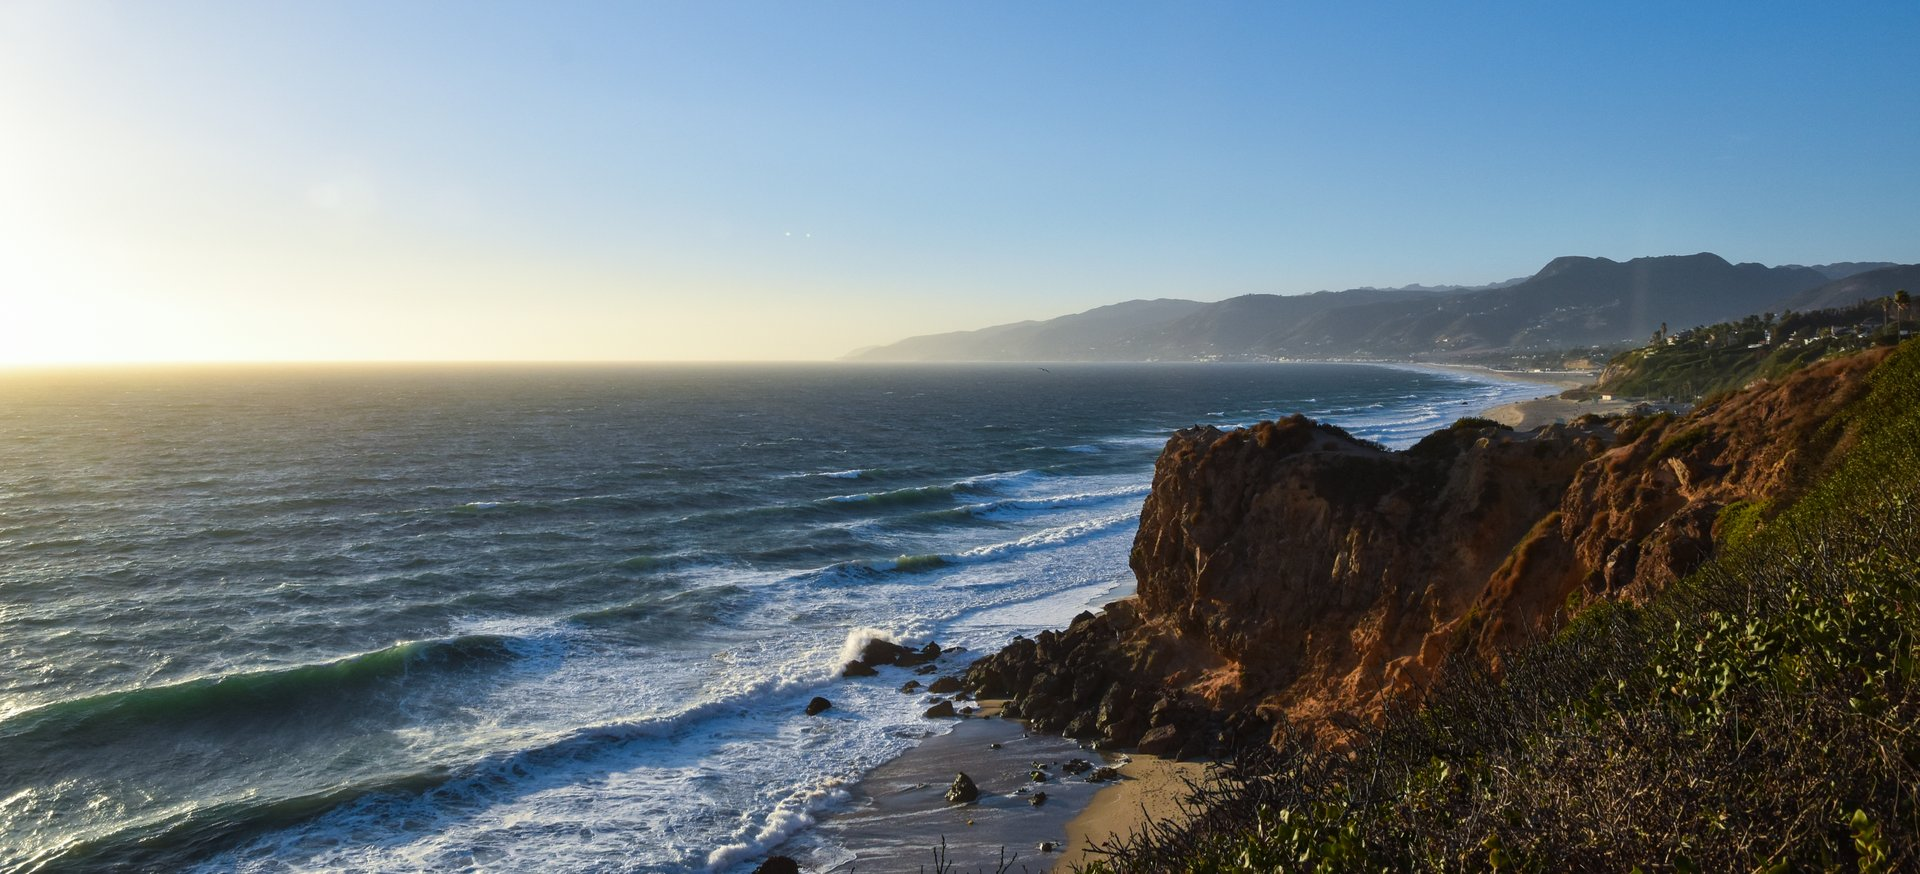 Best time to see Point Dume 2020